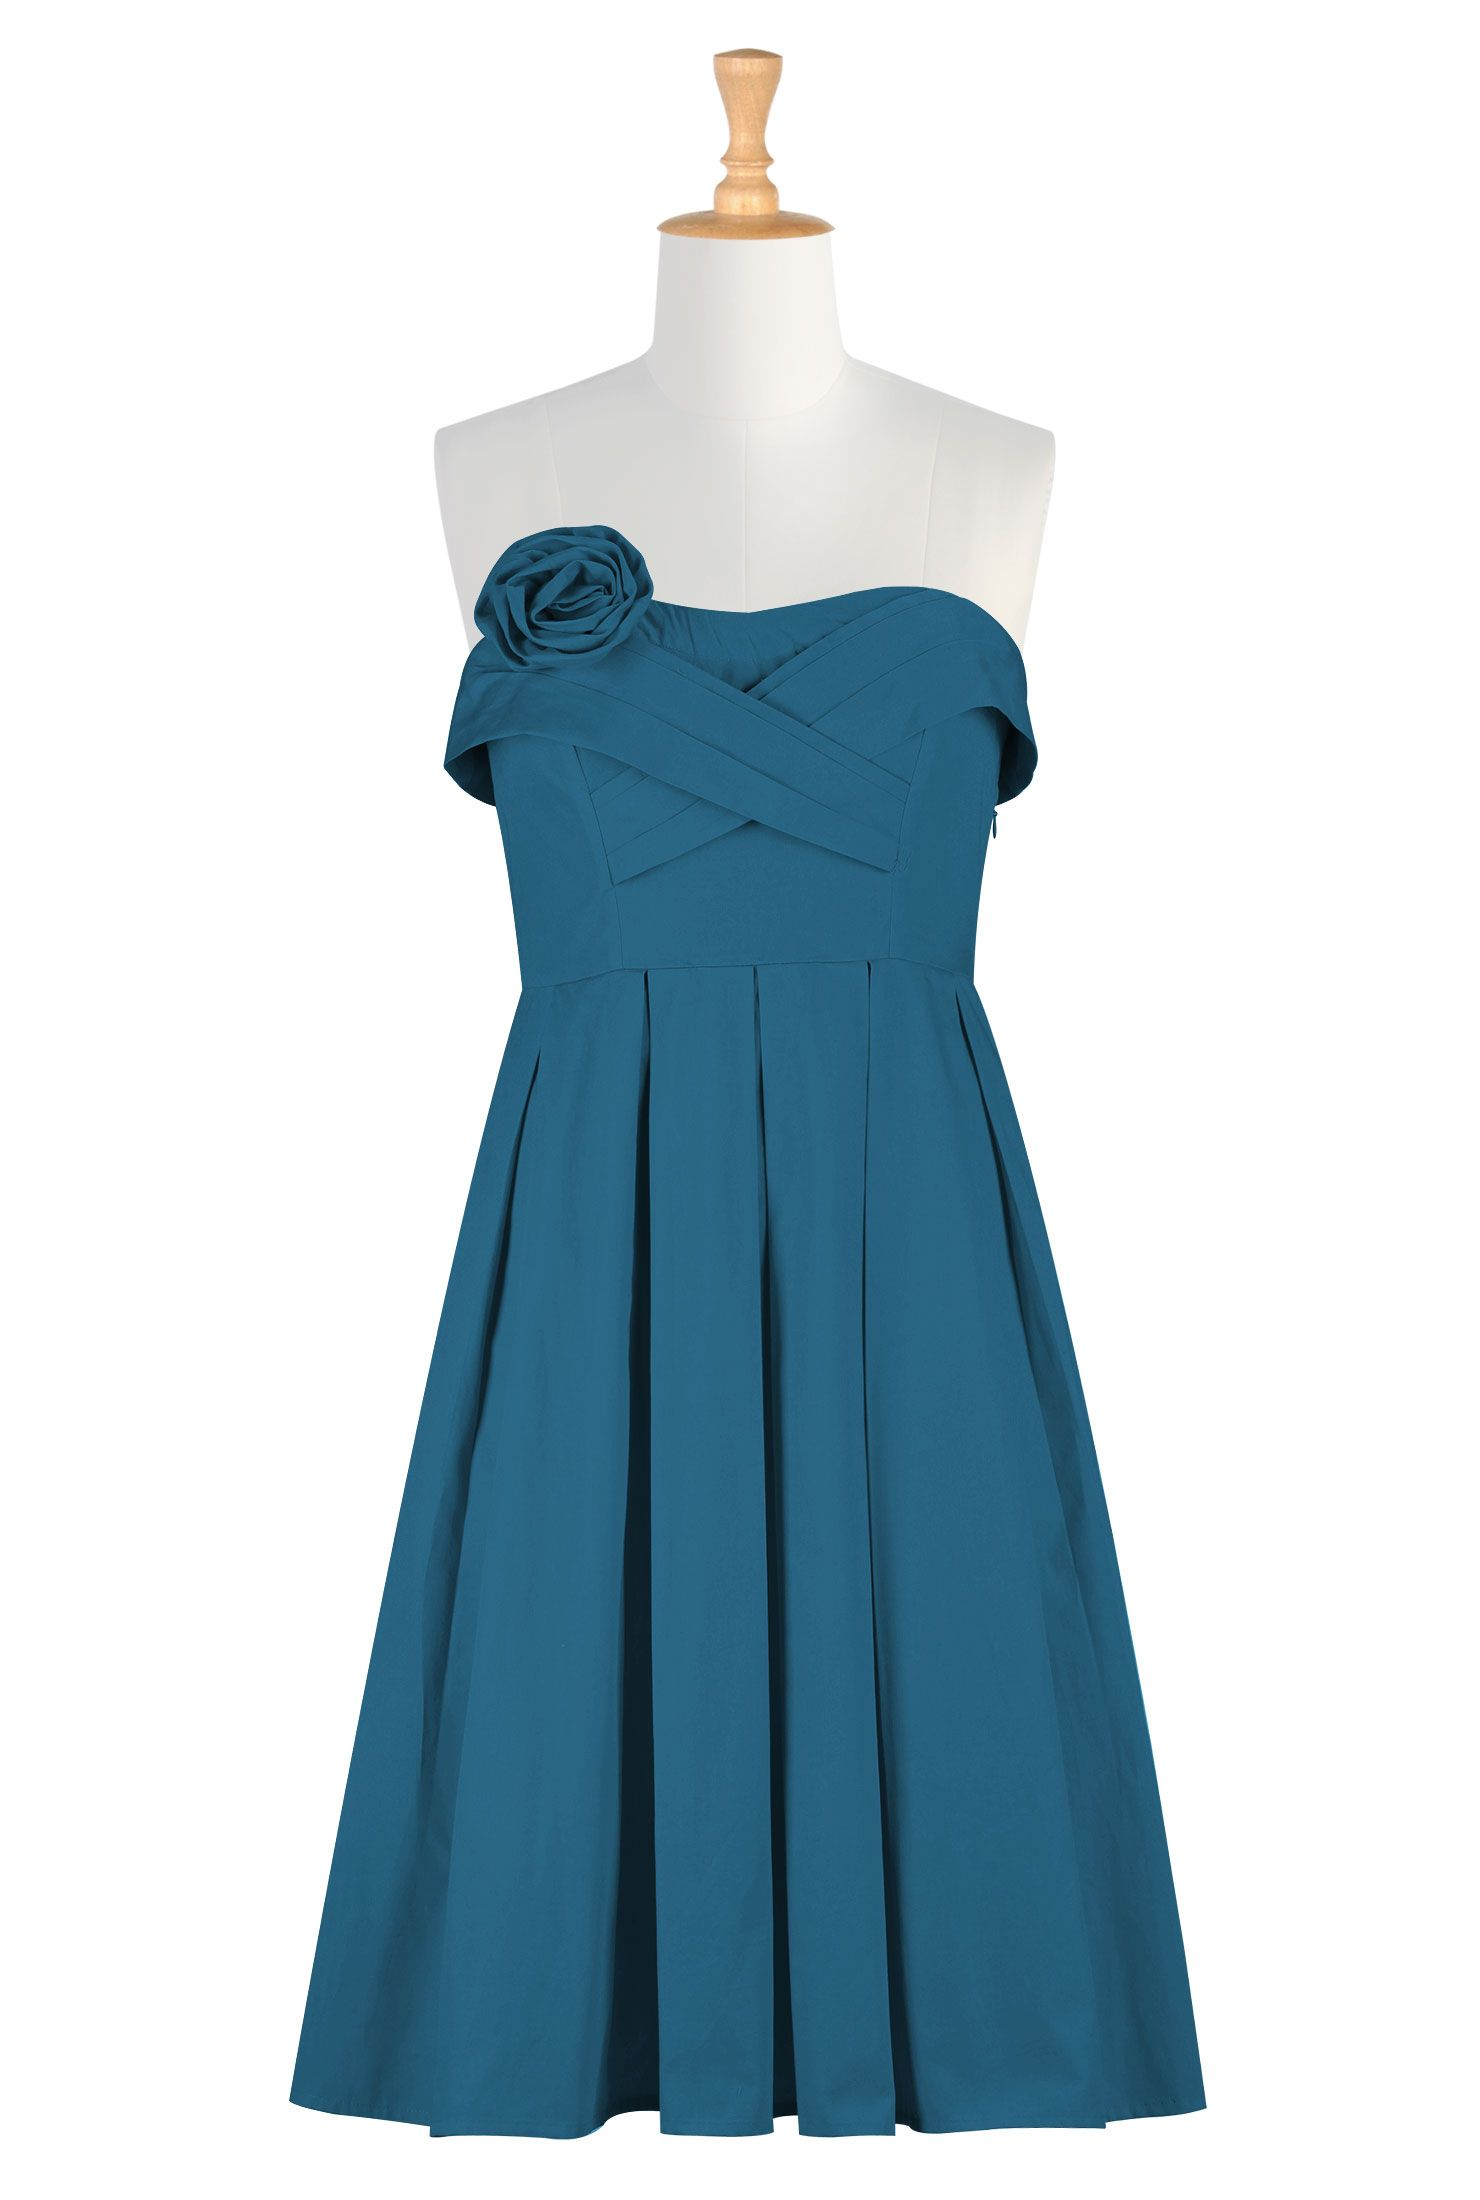 Go teal strapless dress short sleeve dresses sleeved dress and teal bridesmaid dress shop womens short sleeve dresses dress apparel to suit ombrellifo Choice Image